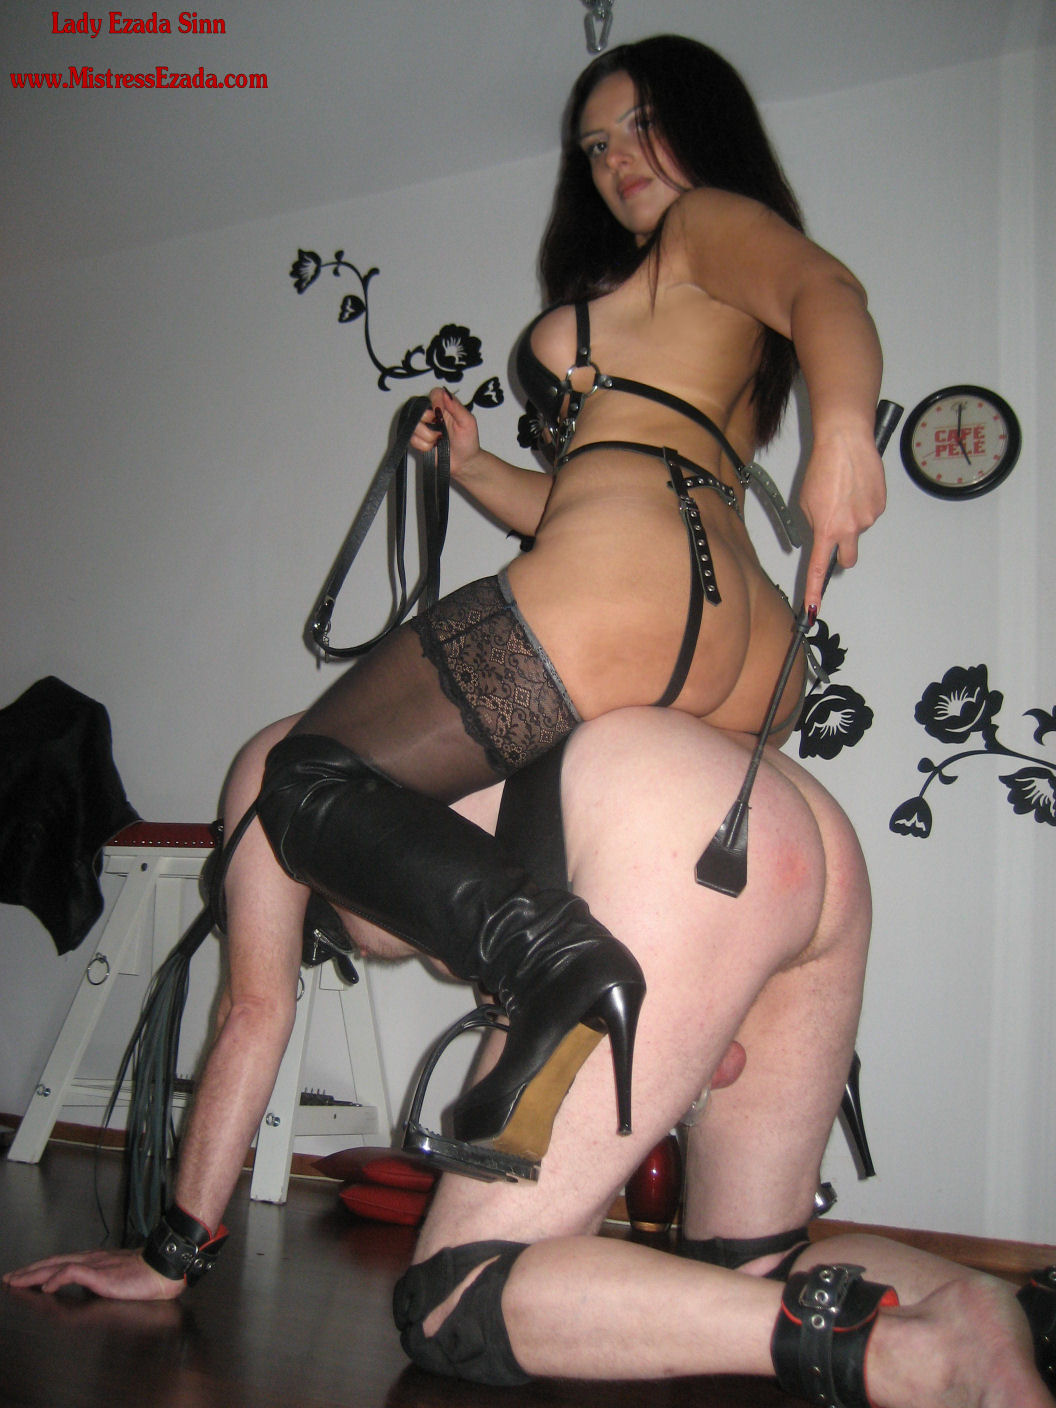 Mistresses ride domination: adult school program